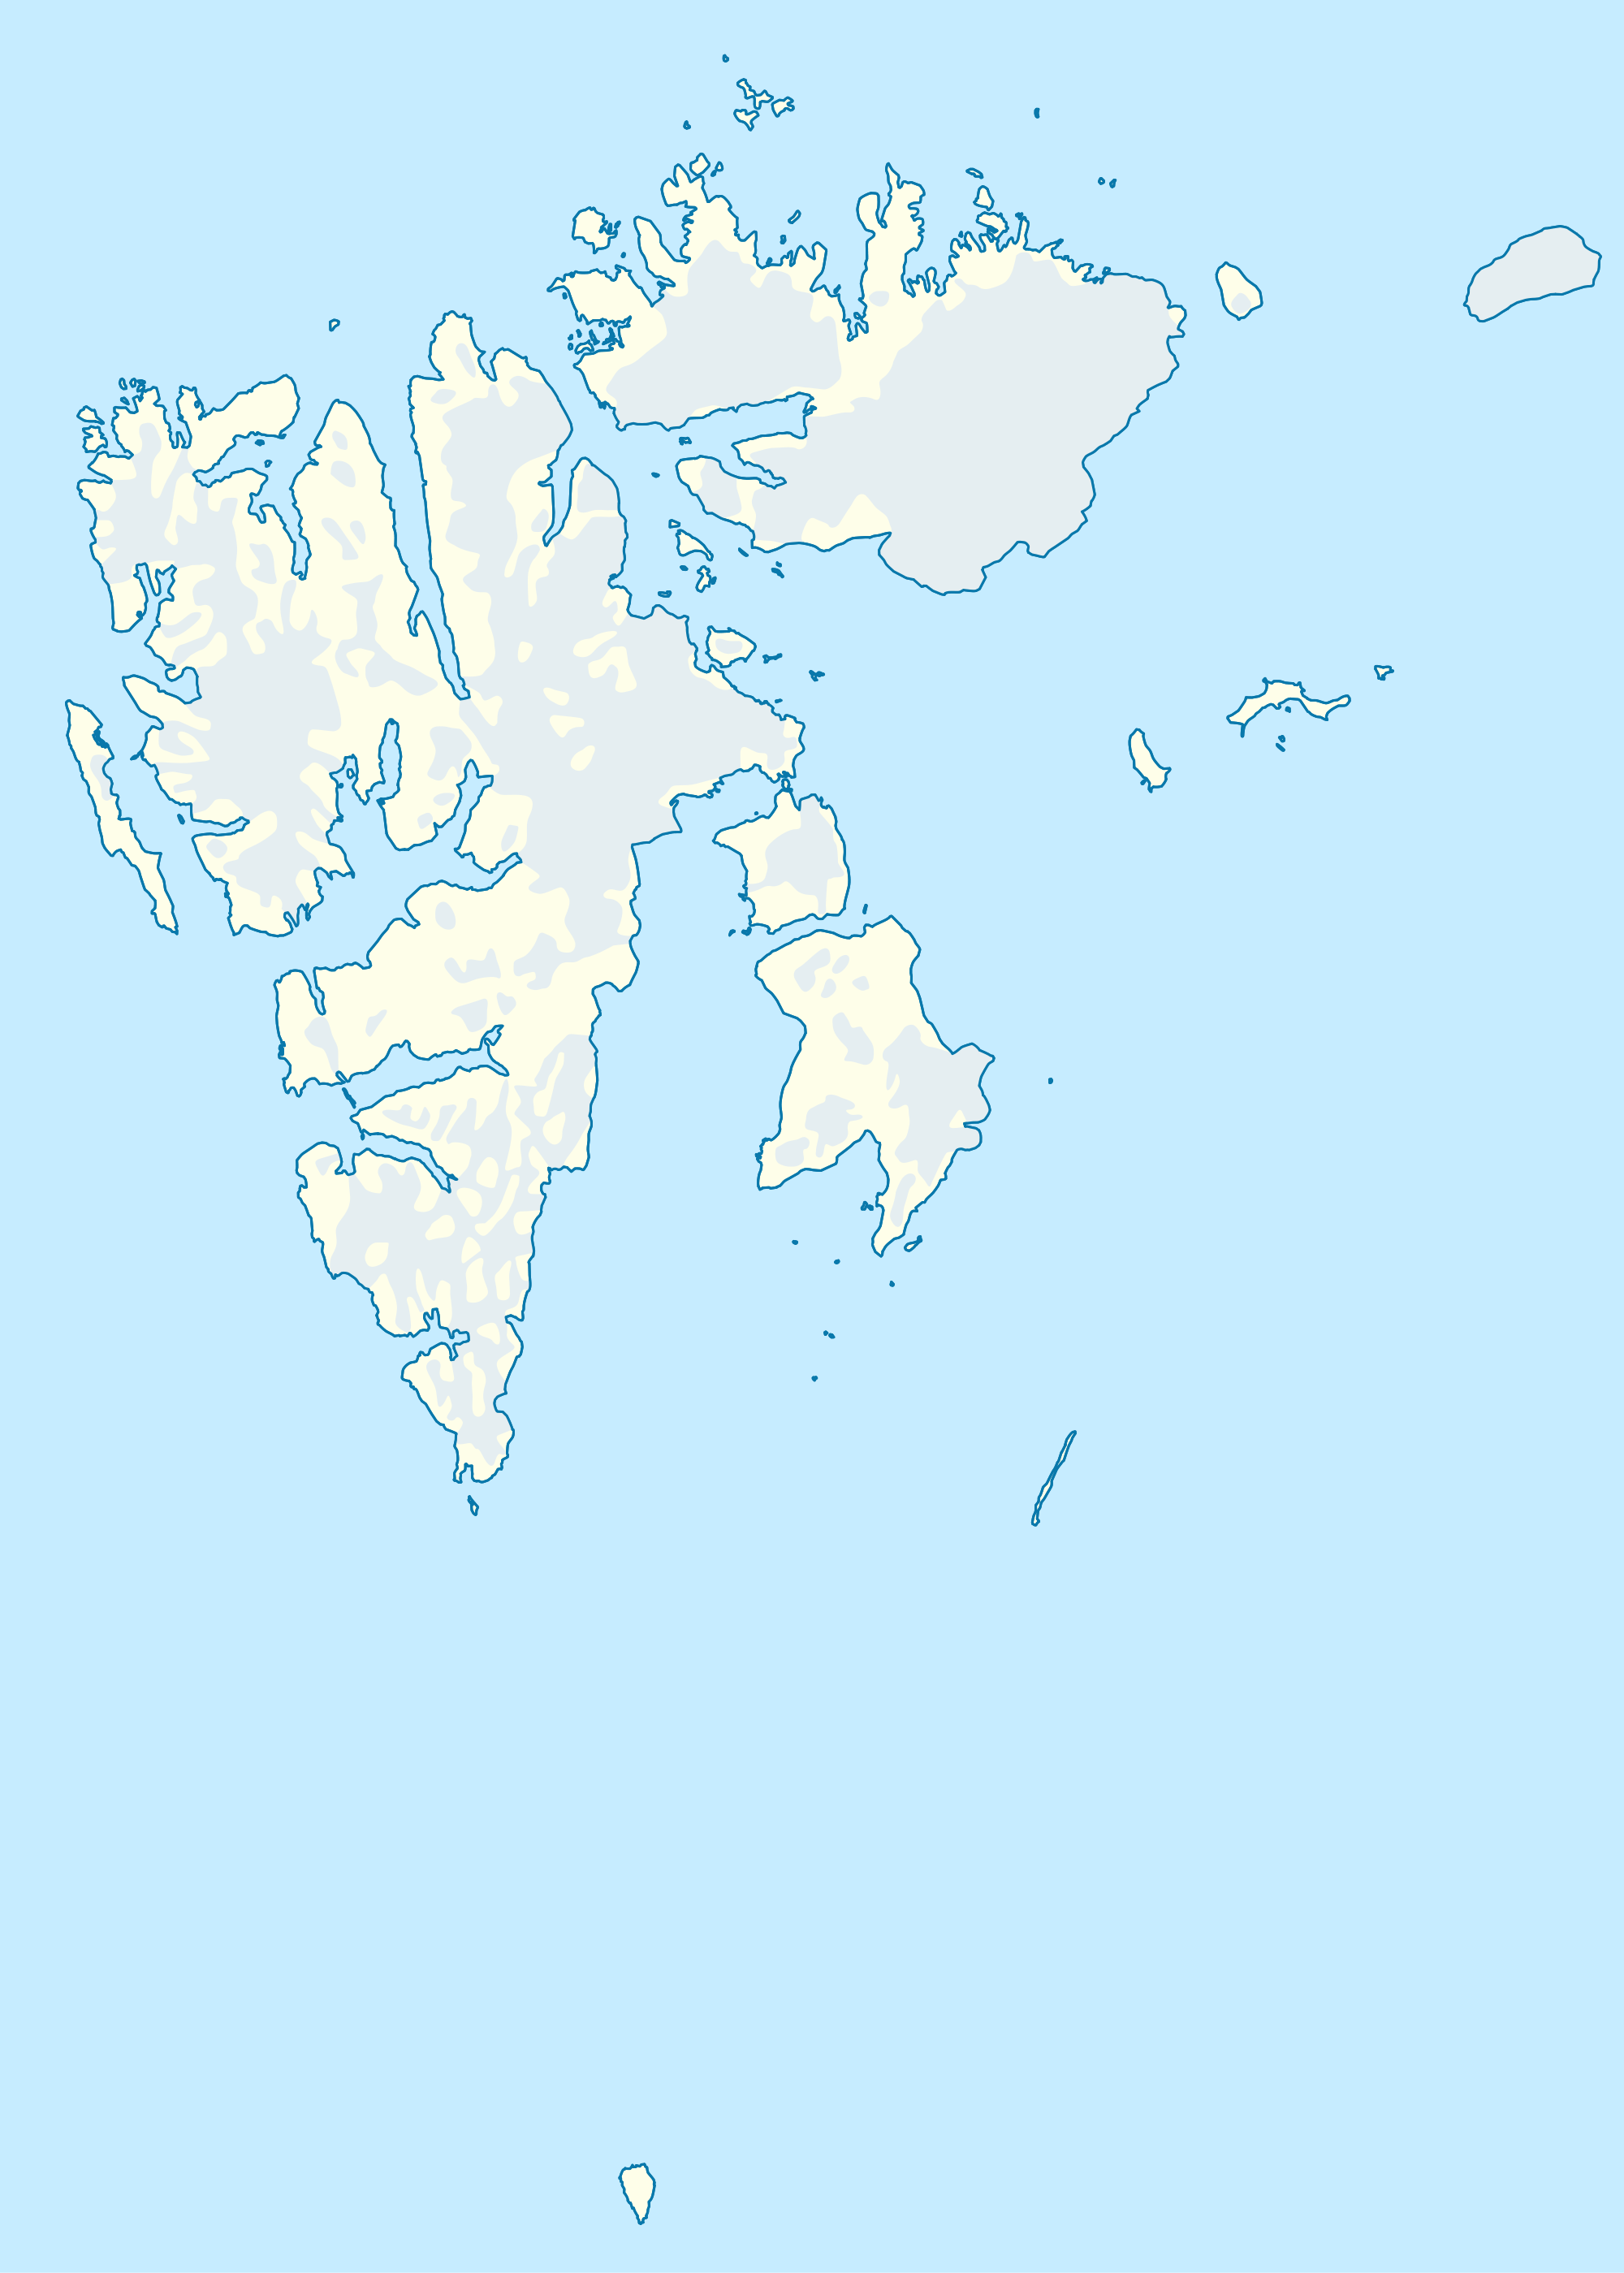 Norway Regions Map Mapsofnet - Norway highway map